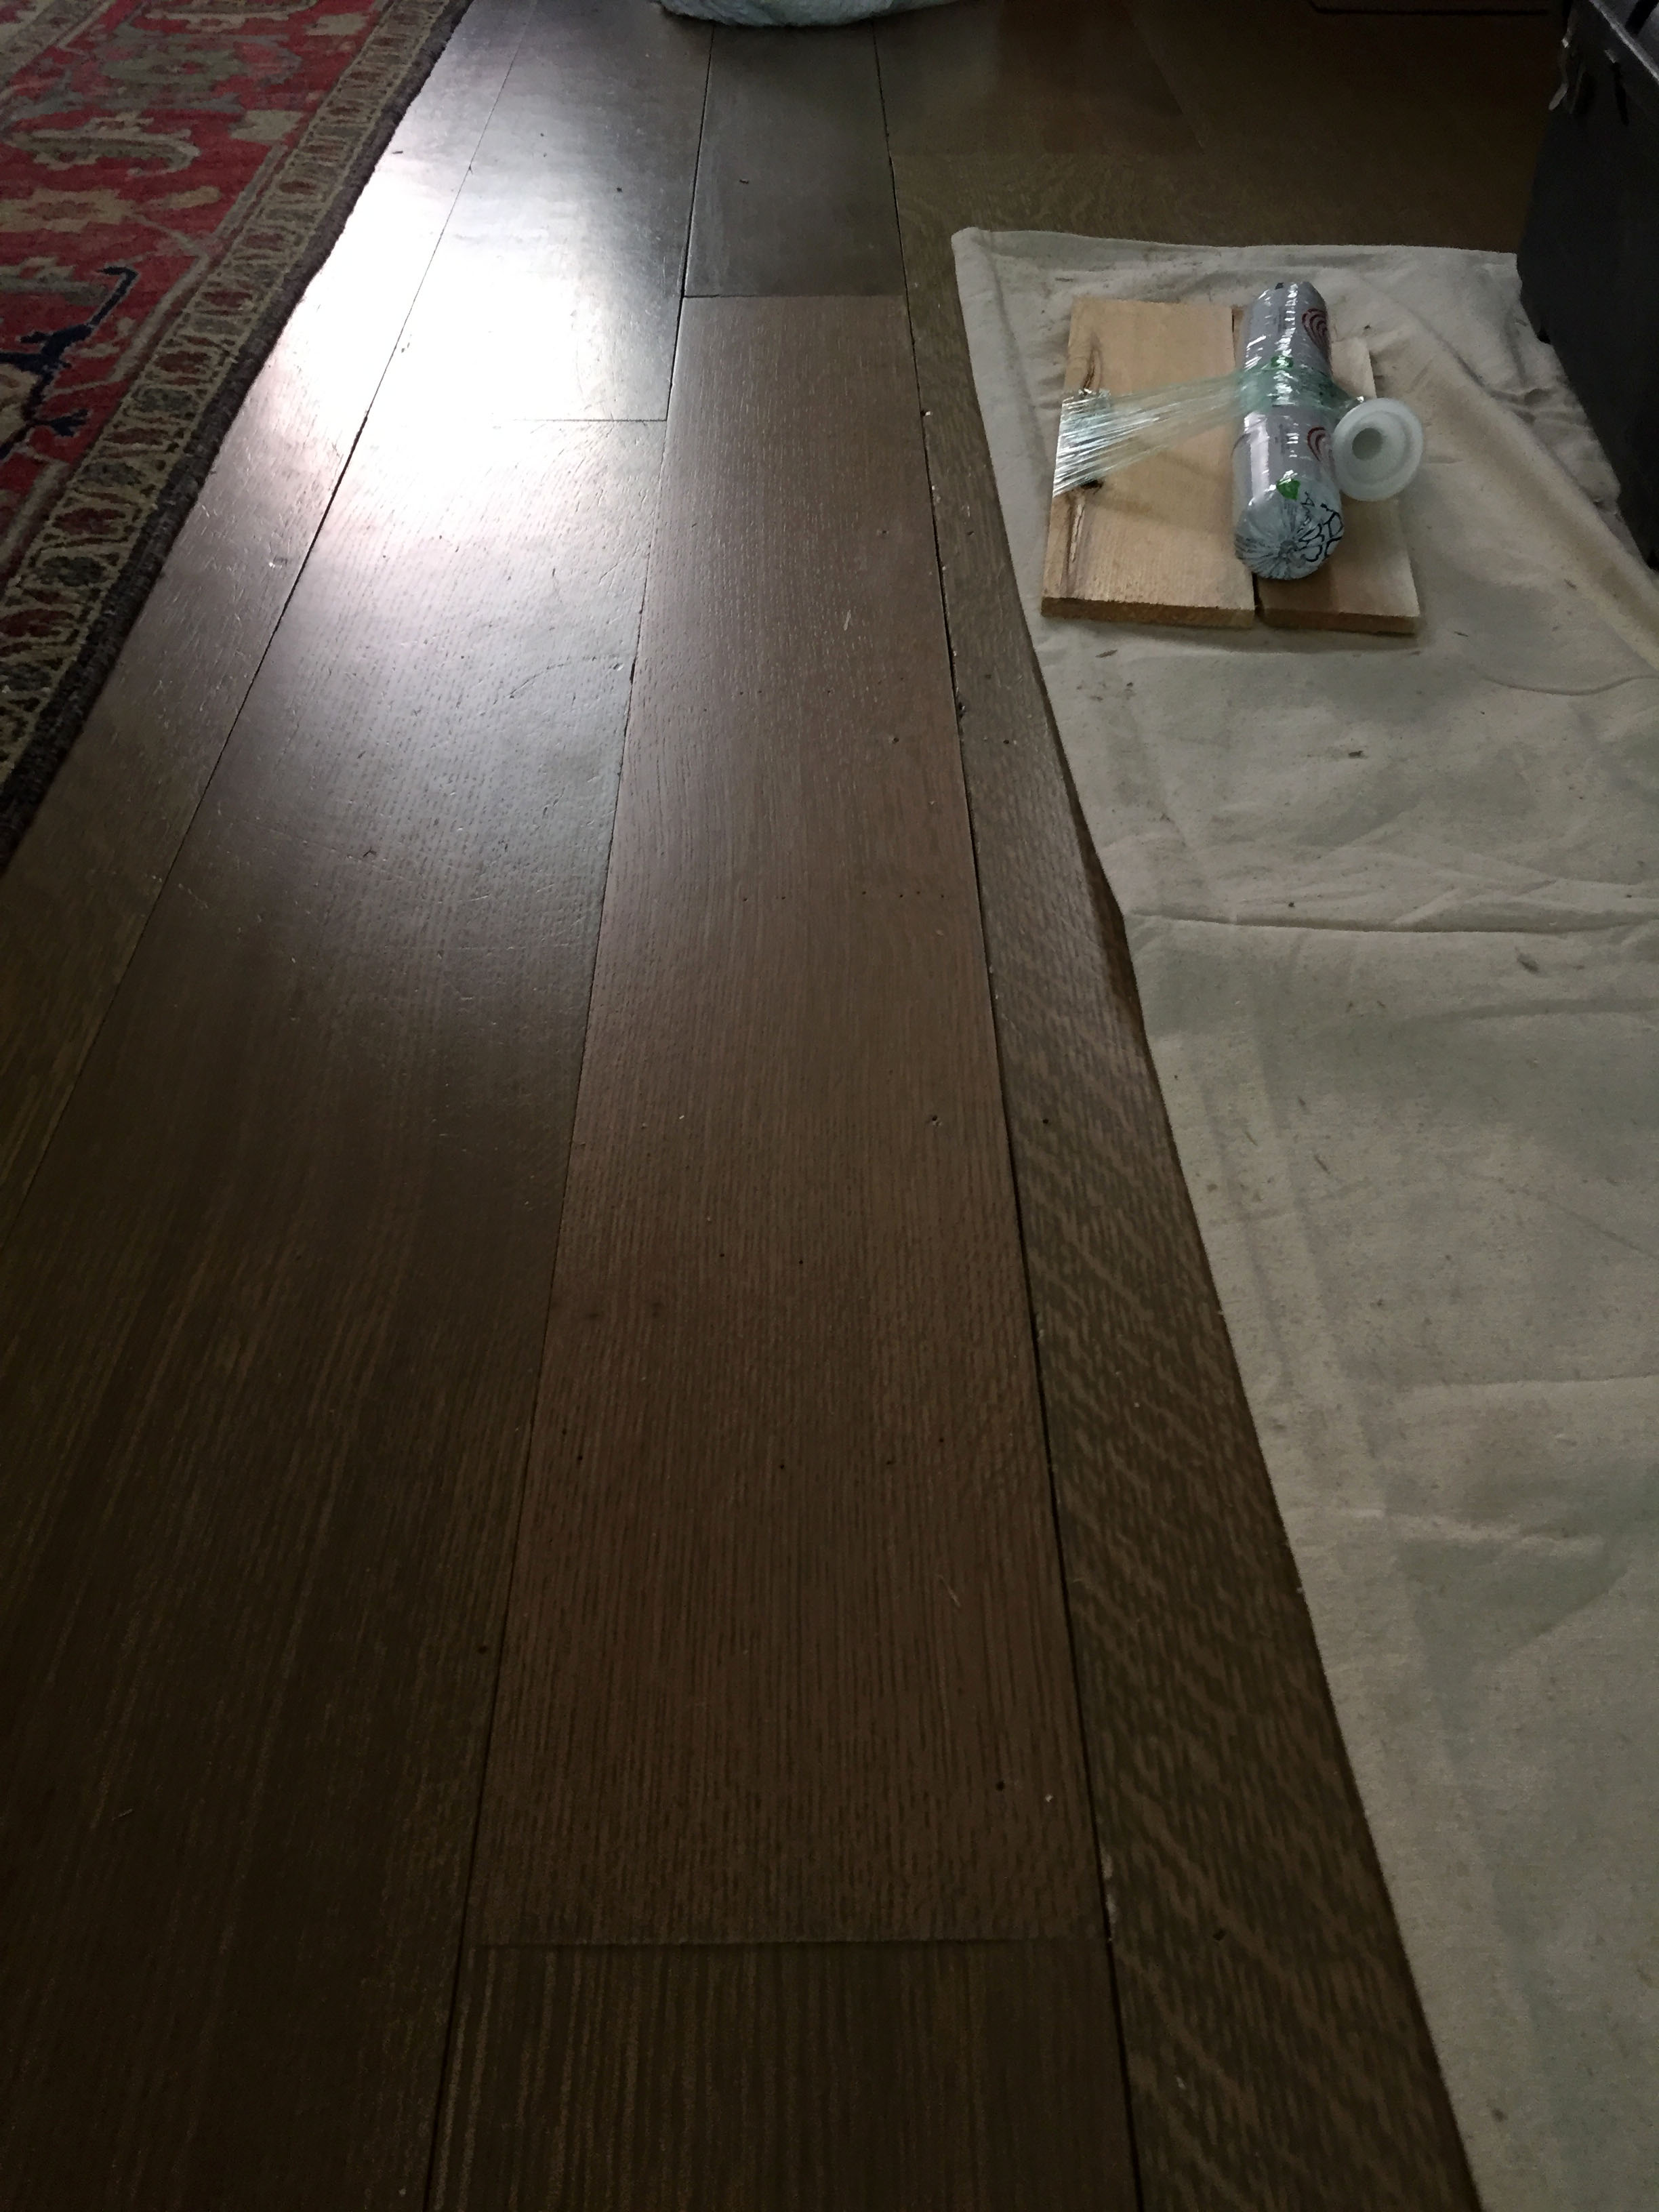 Wood Floor Patch Complete with Polyurethane